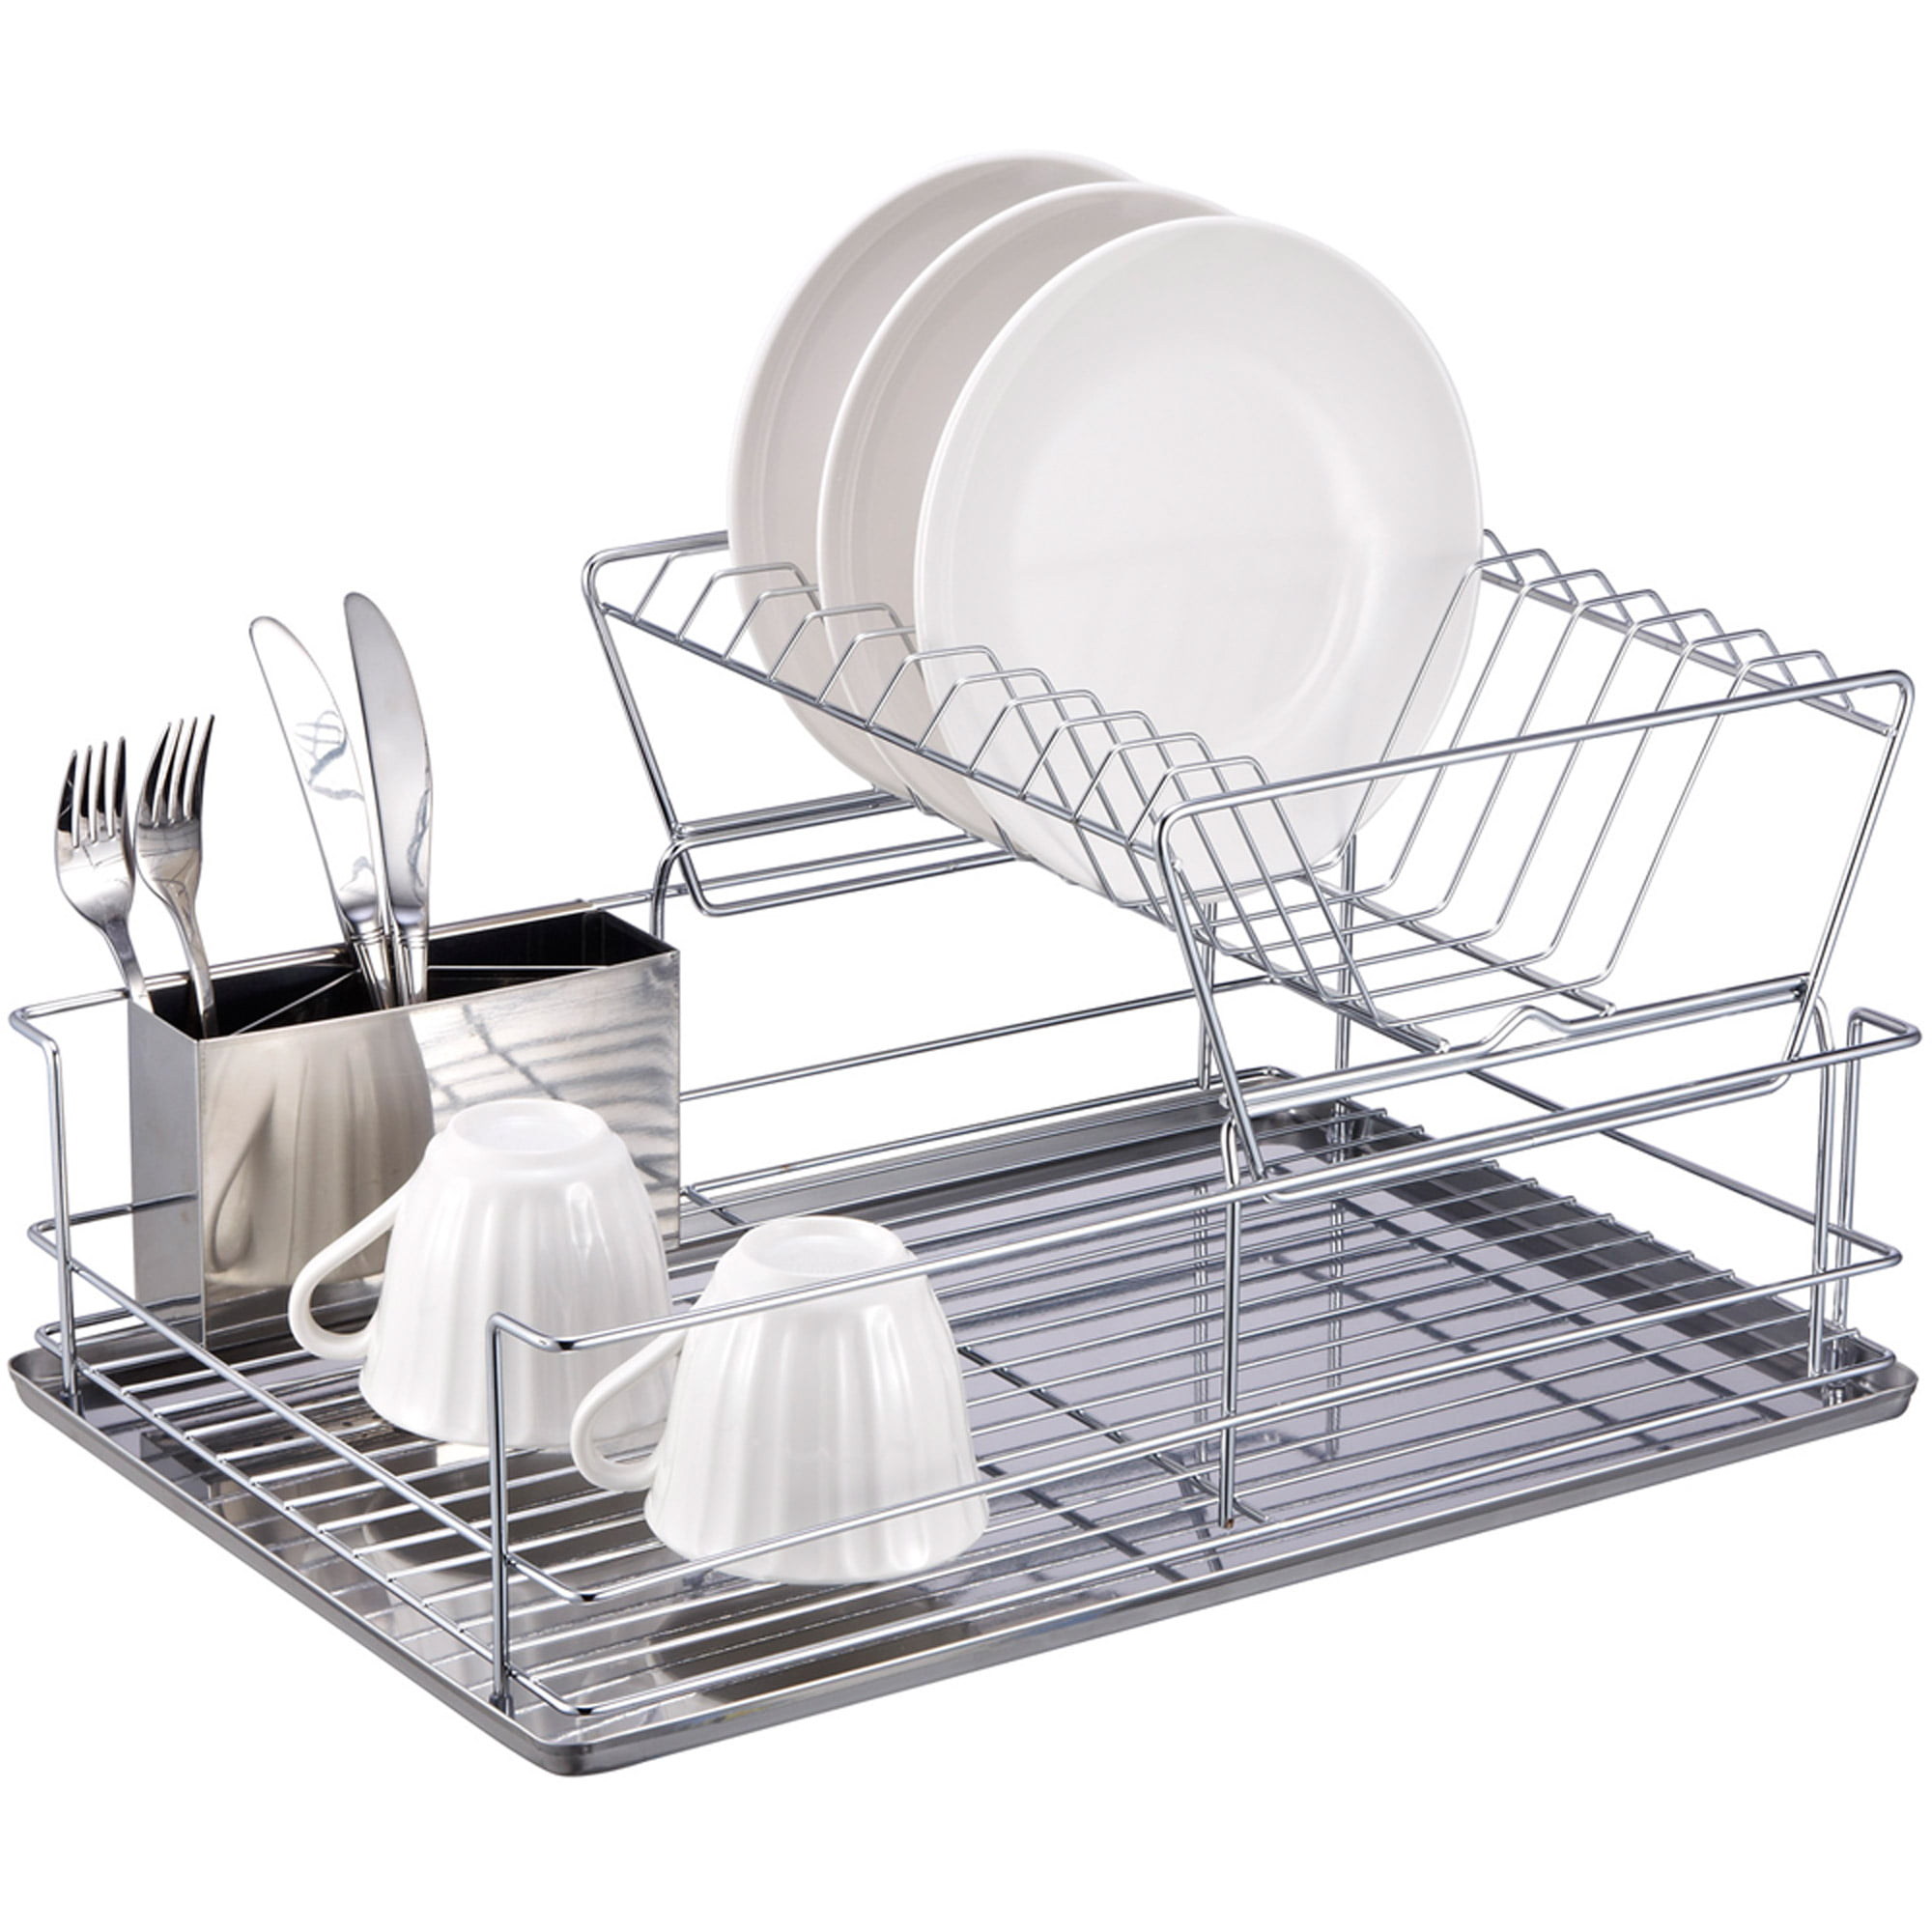 sc 1 st  Walmart.com & 2-Tier Dish Rack Chrome/Stainless Steel - Walmart.com